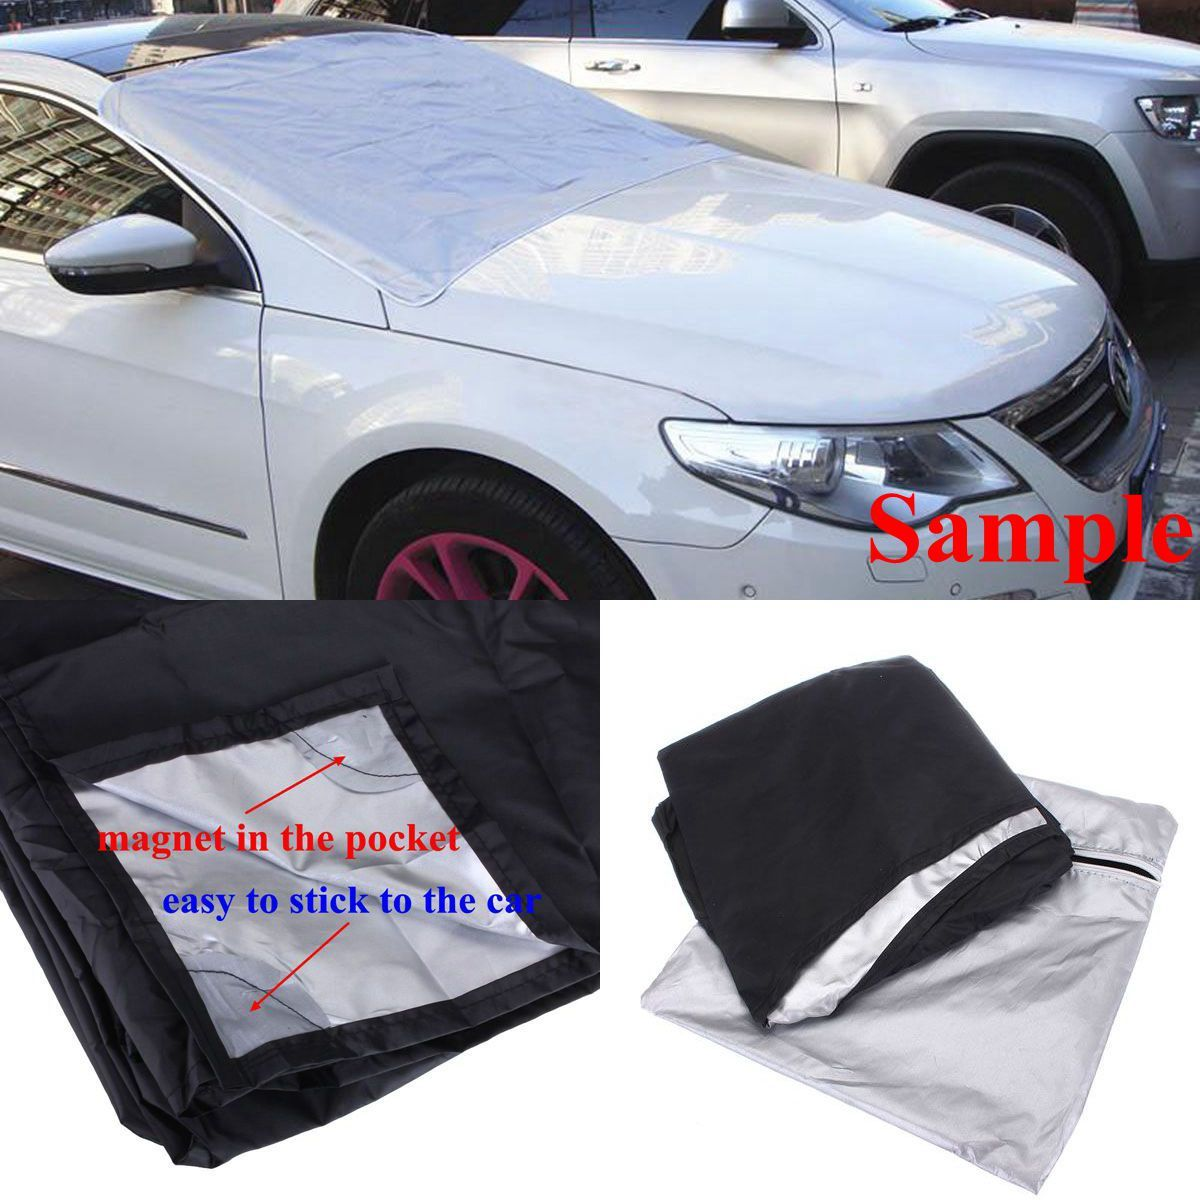 Car SUV Magnet Windshield Cover Sun Shield Snow Ice Frost Freeze Protector Black Silver